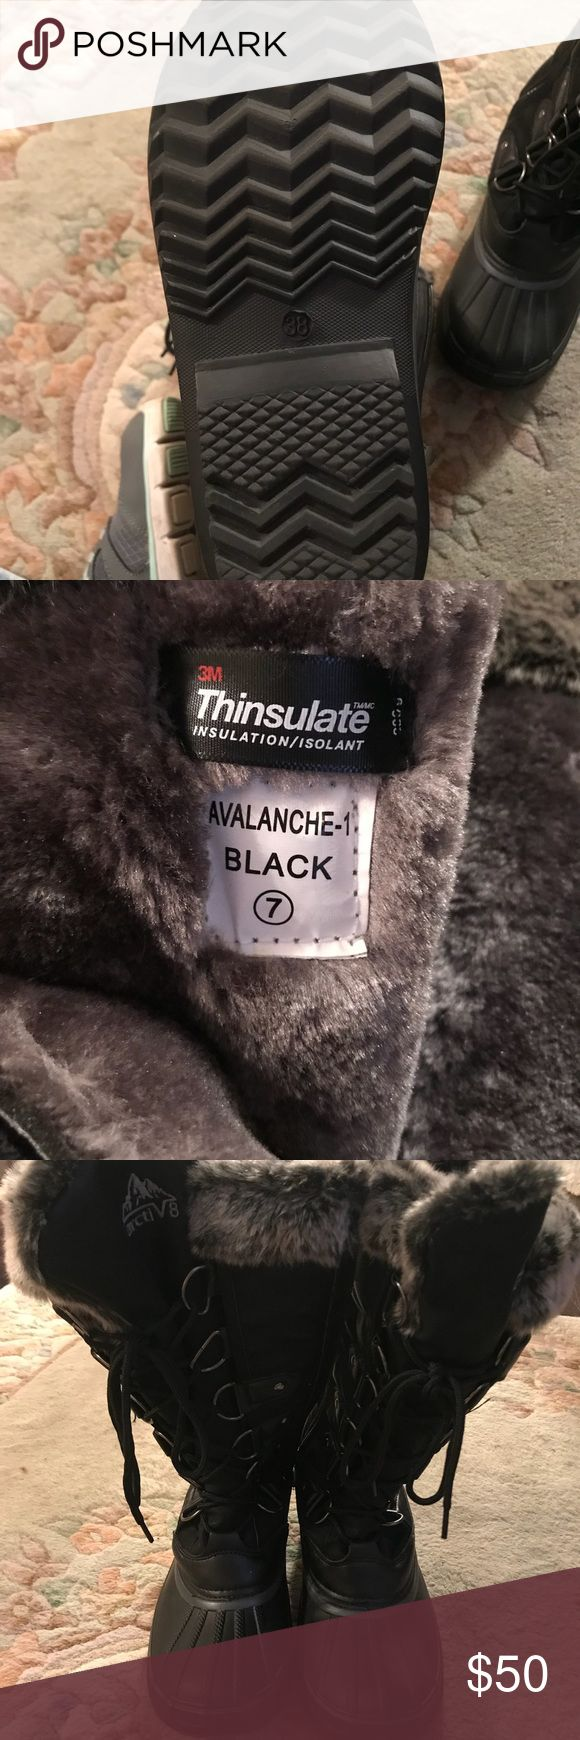 Black Thinsulate Boot Black Thinsulate Boot. Women's size 7. NWOT. Water proof bottom. Fur lined. Just in time for winter and Christmas! thinsulate Shoes Winter & Rain Boots